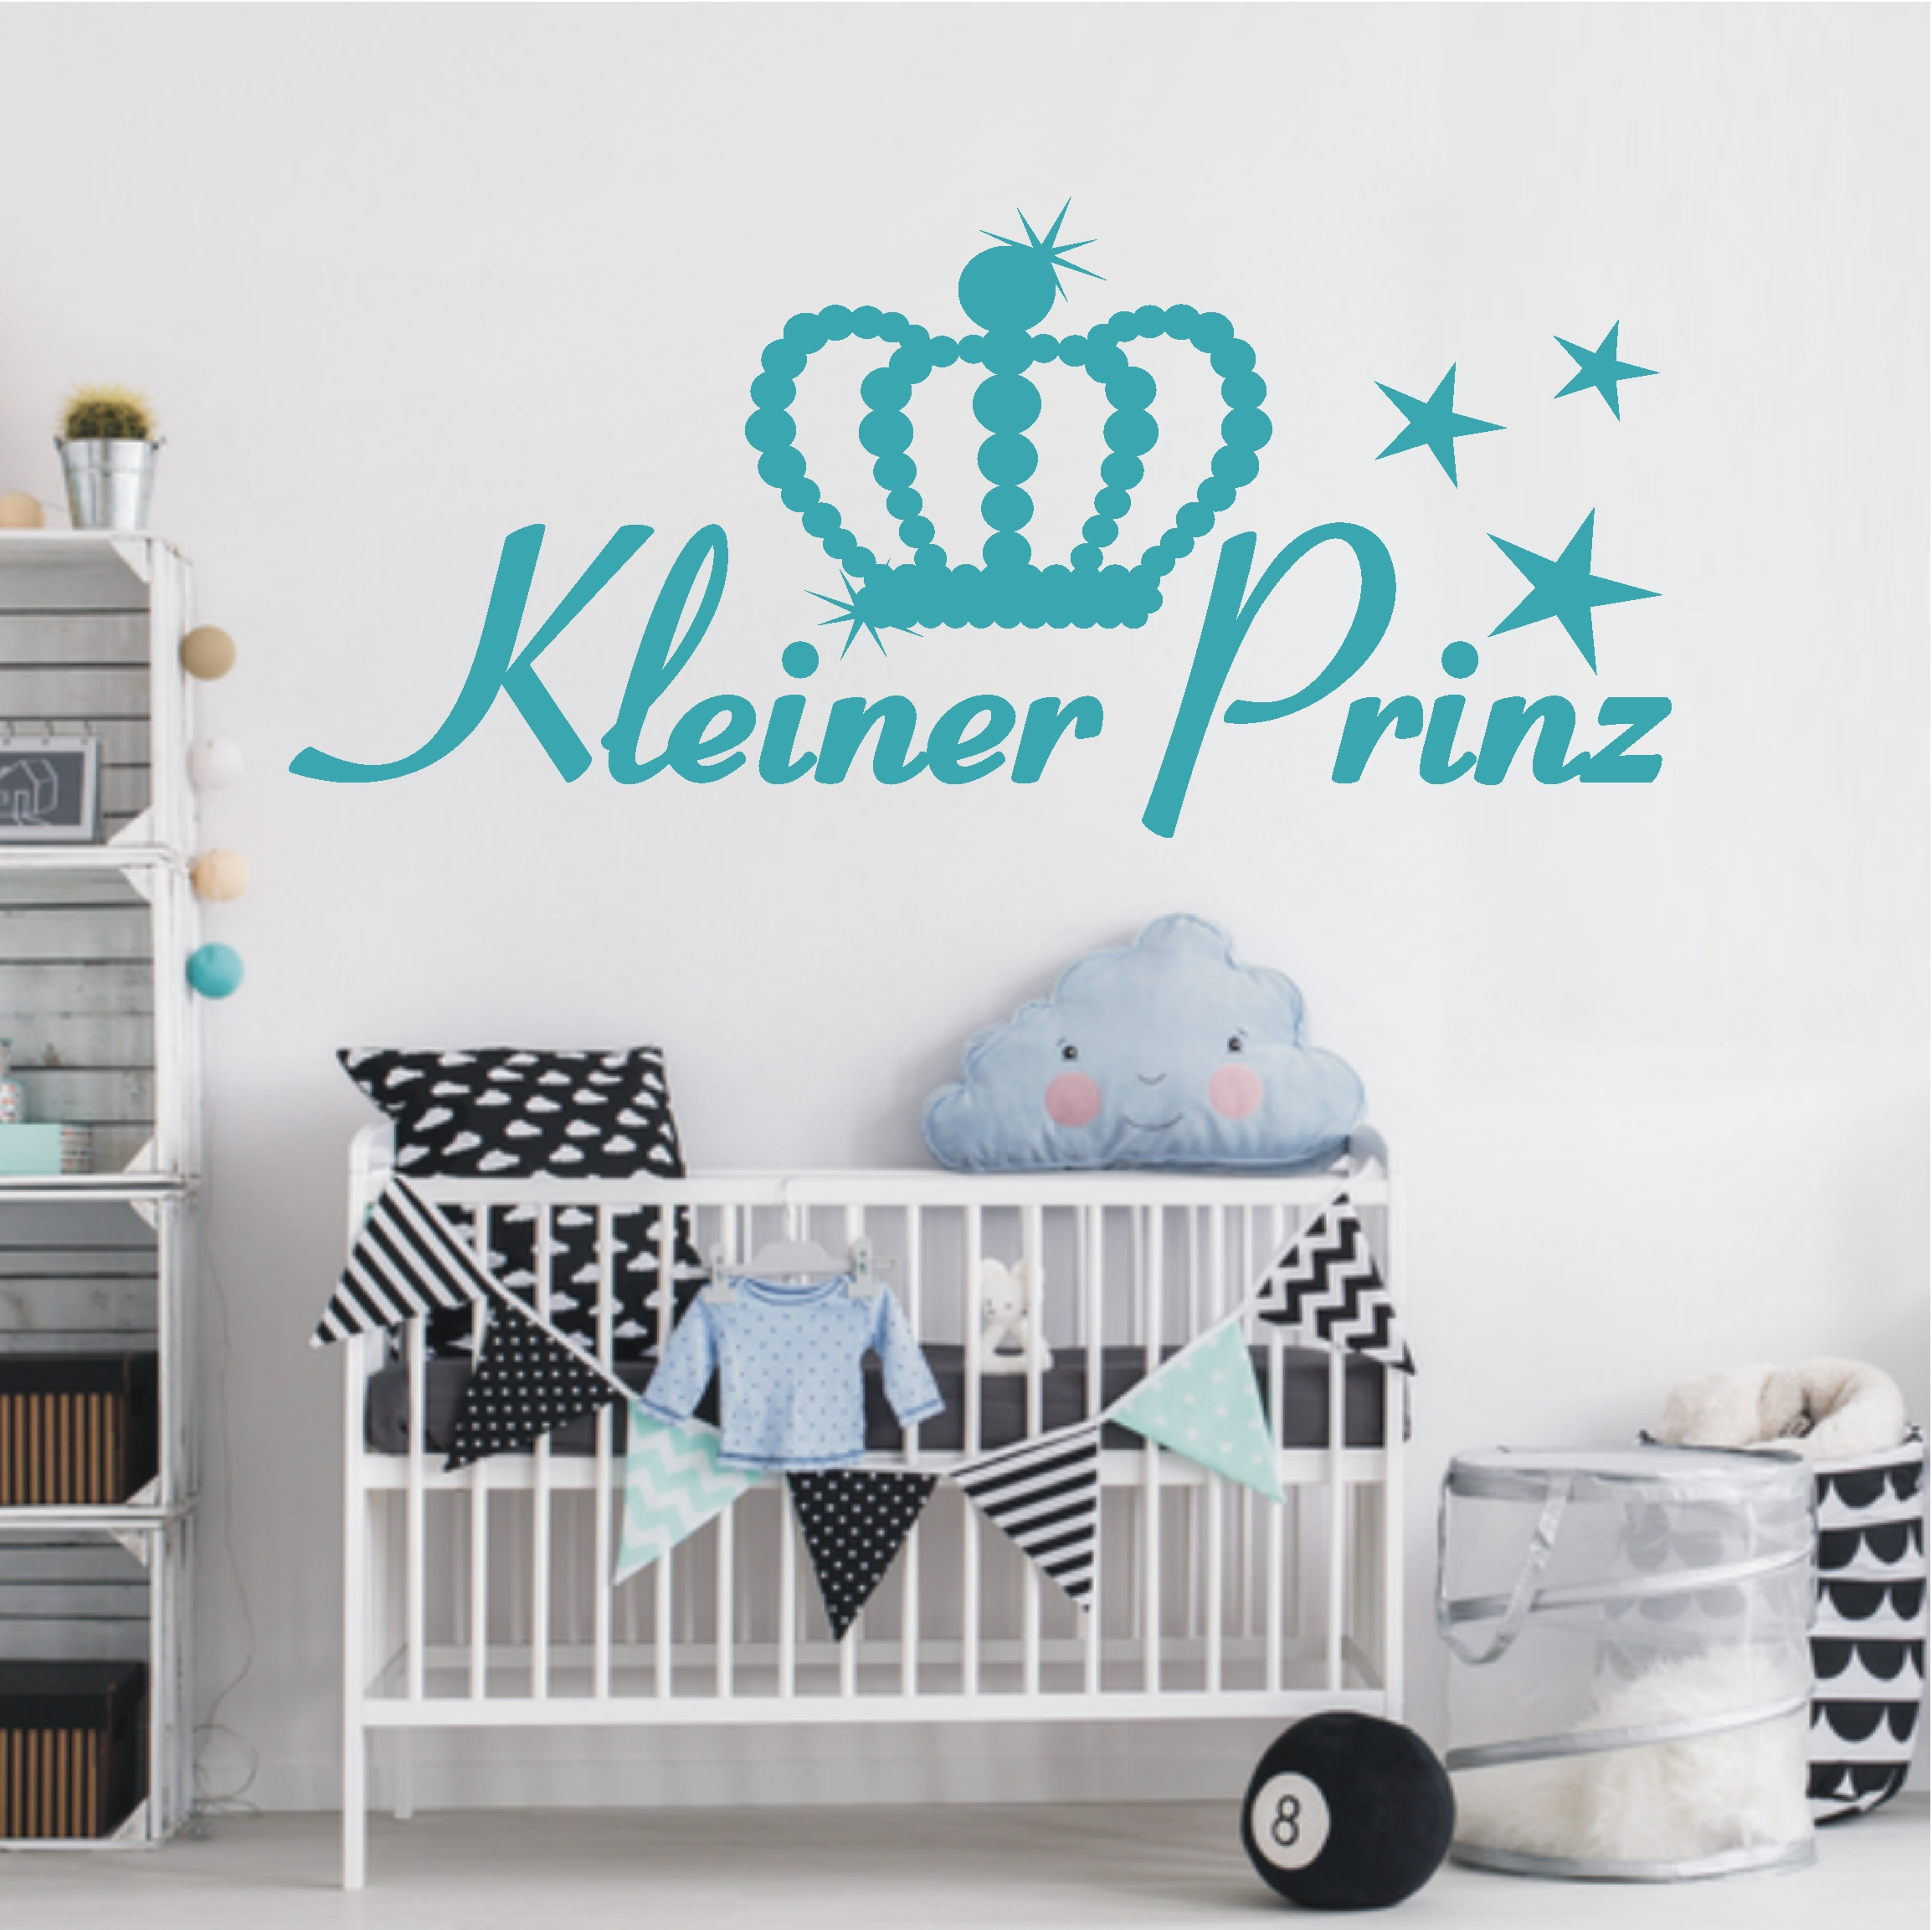 deko shop wandtattoo kleiner prinz schriftzug deko shop. Black Bedroom Furniture Sets. Home Design Ideas